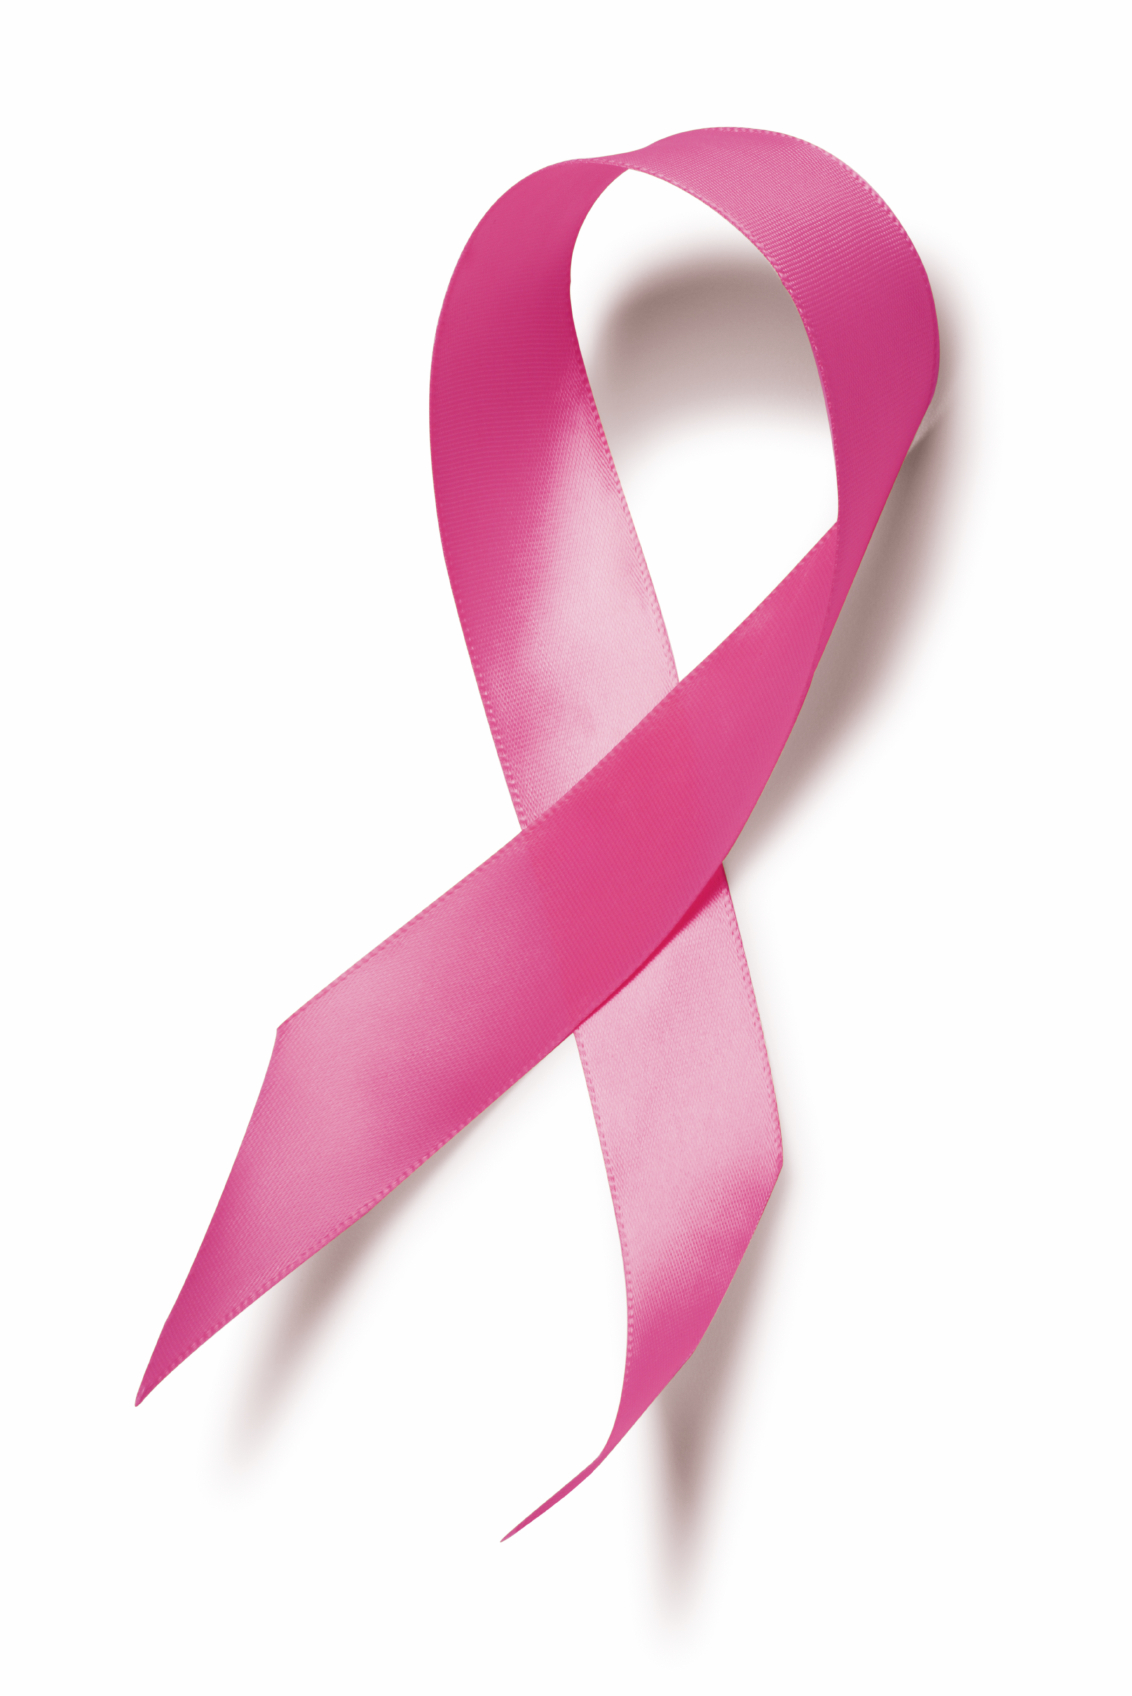 Image result for breast cancer awareness ribbon free